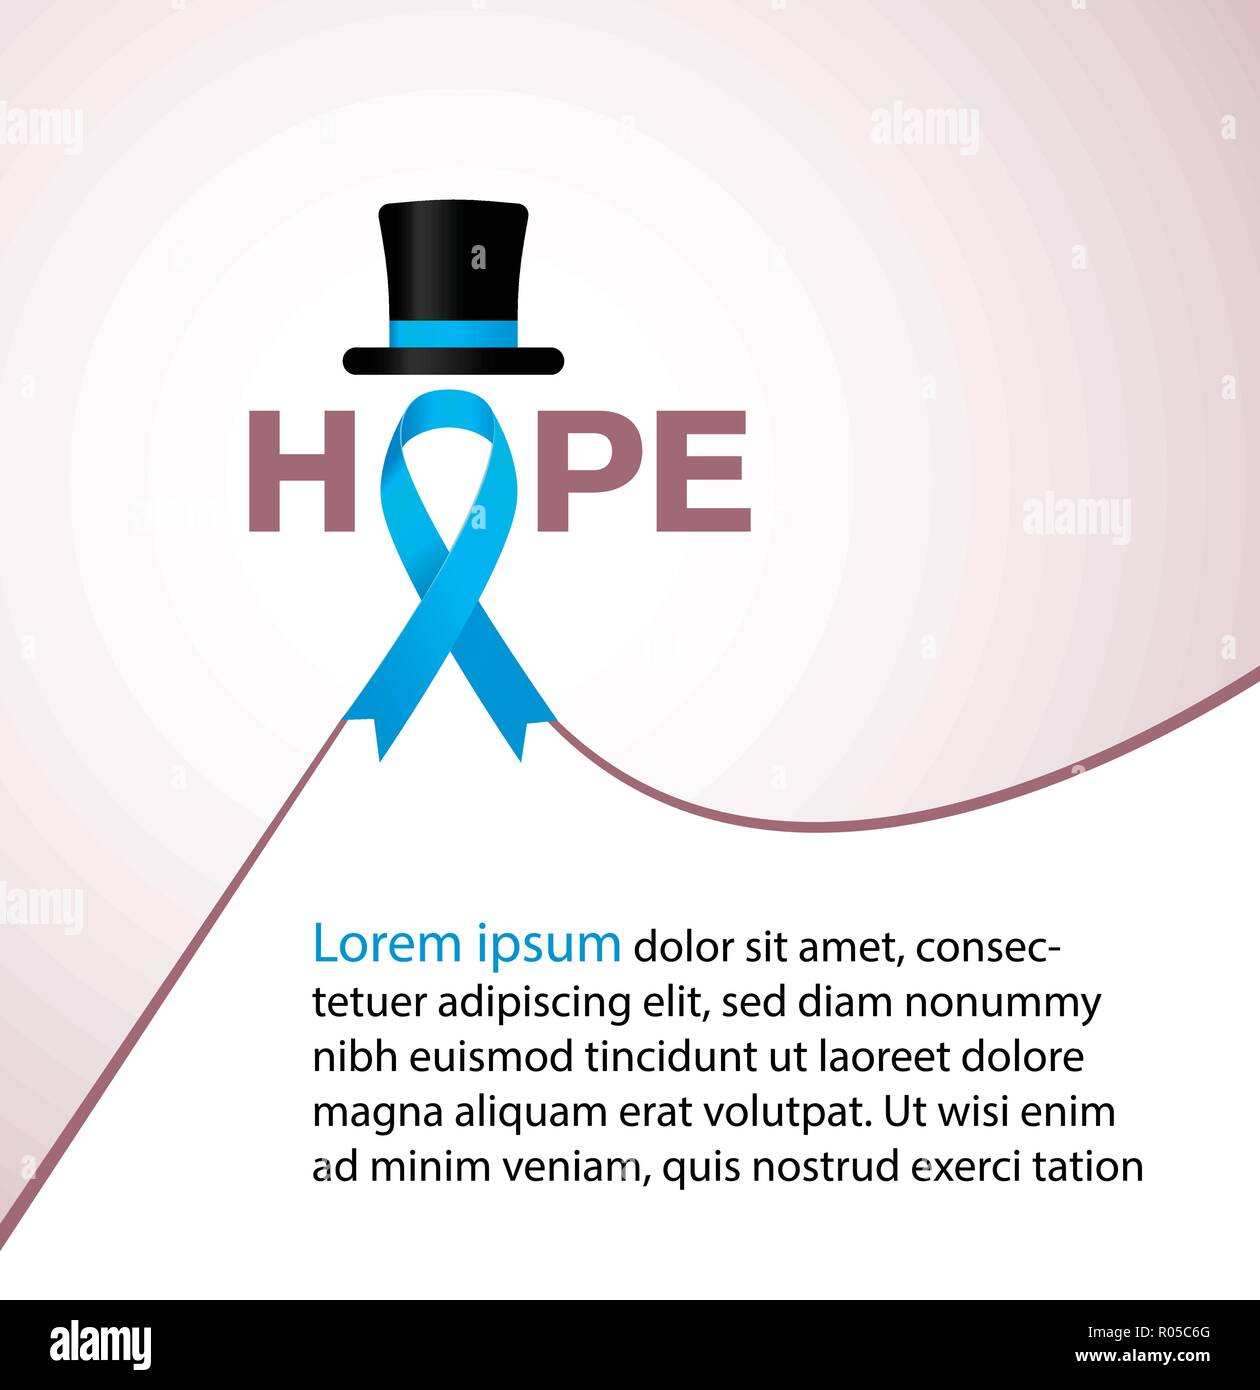 Hope blue ribbon symbolic for prostate cancer awareness campaign and men's health - Stock Image